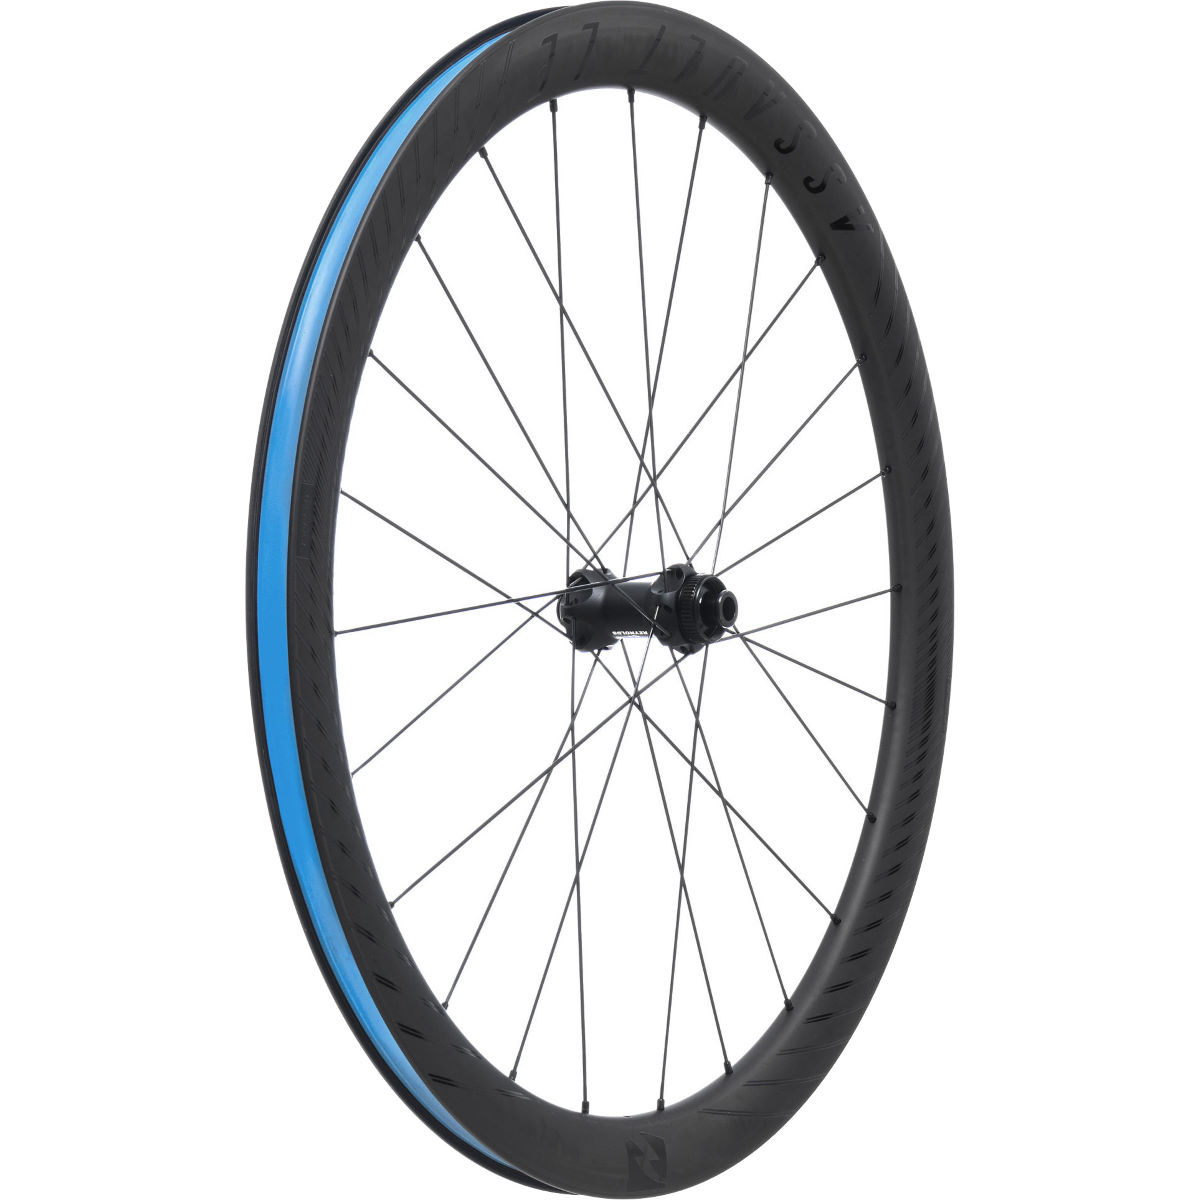 Reynolds Assault LE Carbon DB Front Road Wheel - Ruedas delanteras